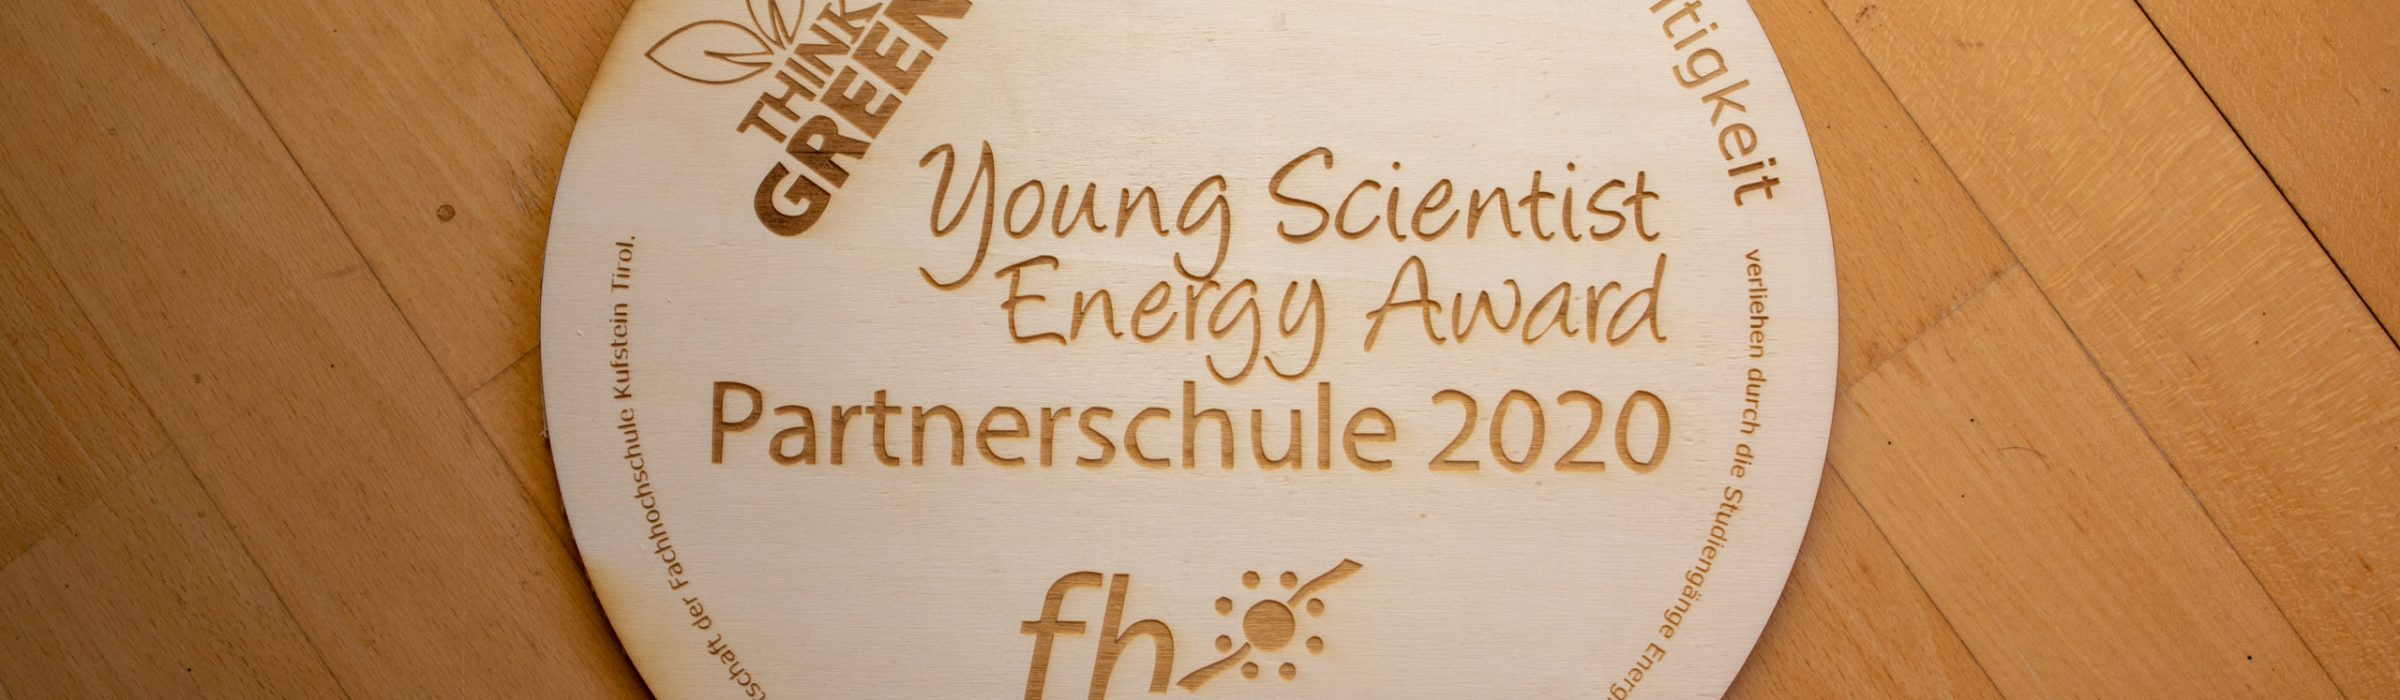 YoungScientistsEnergyAward_header